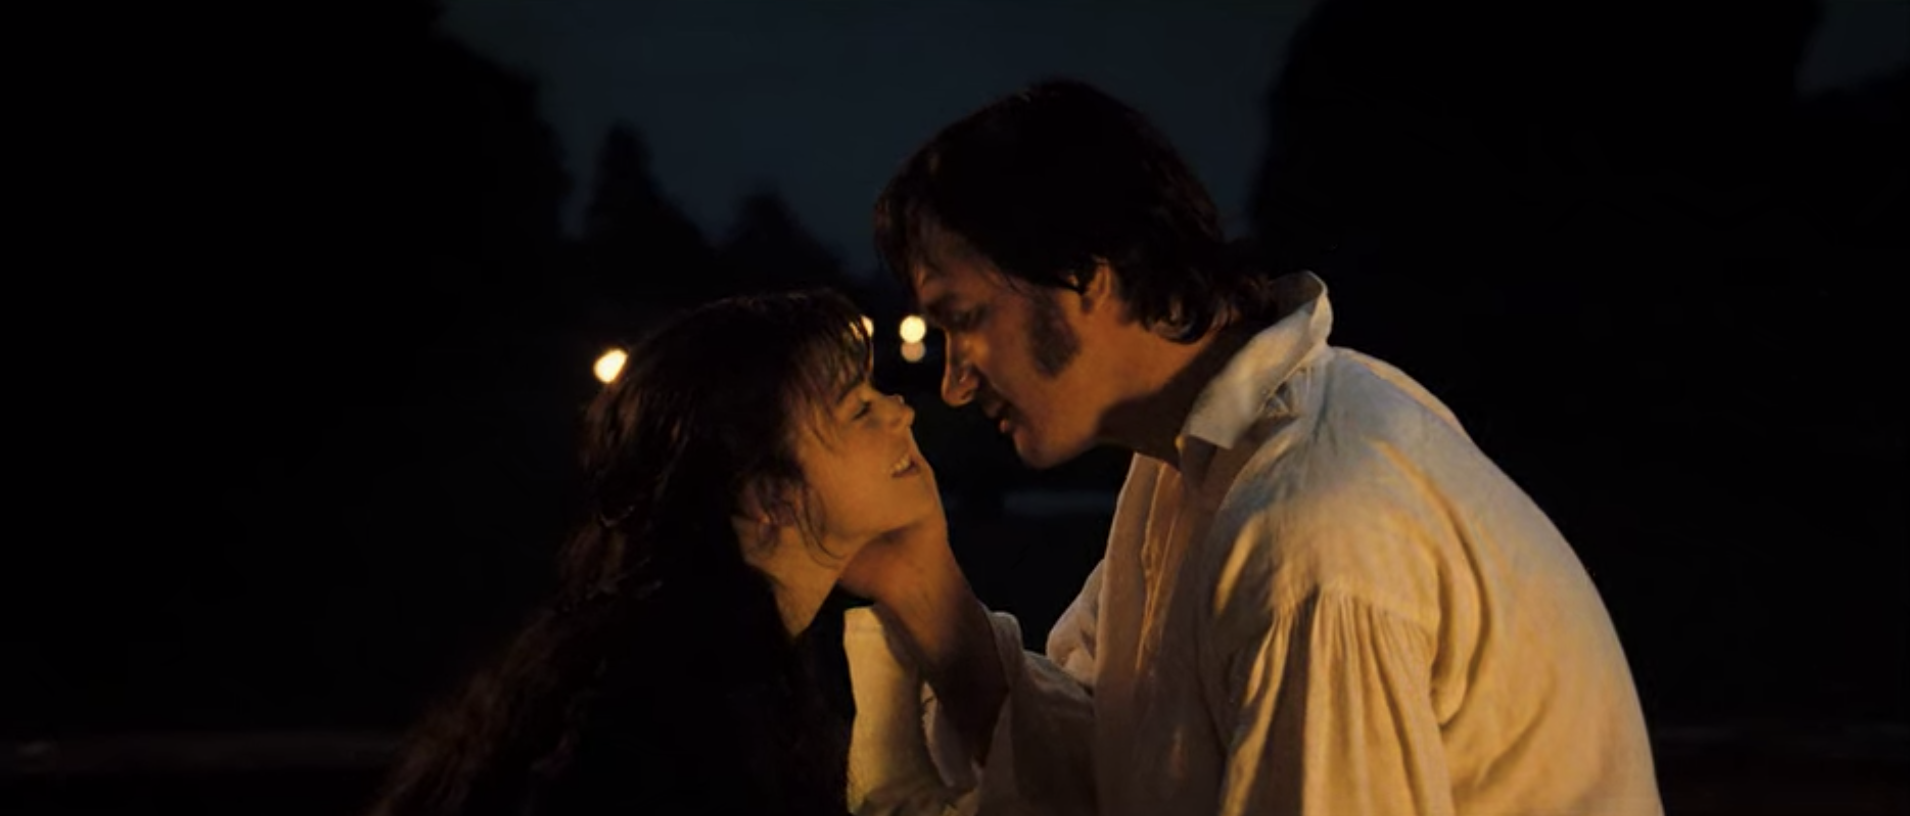 Mr. Darcy caressing Lizzie's face.